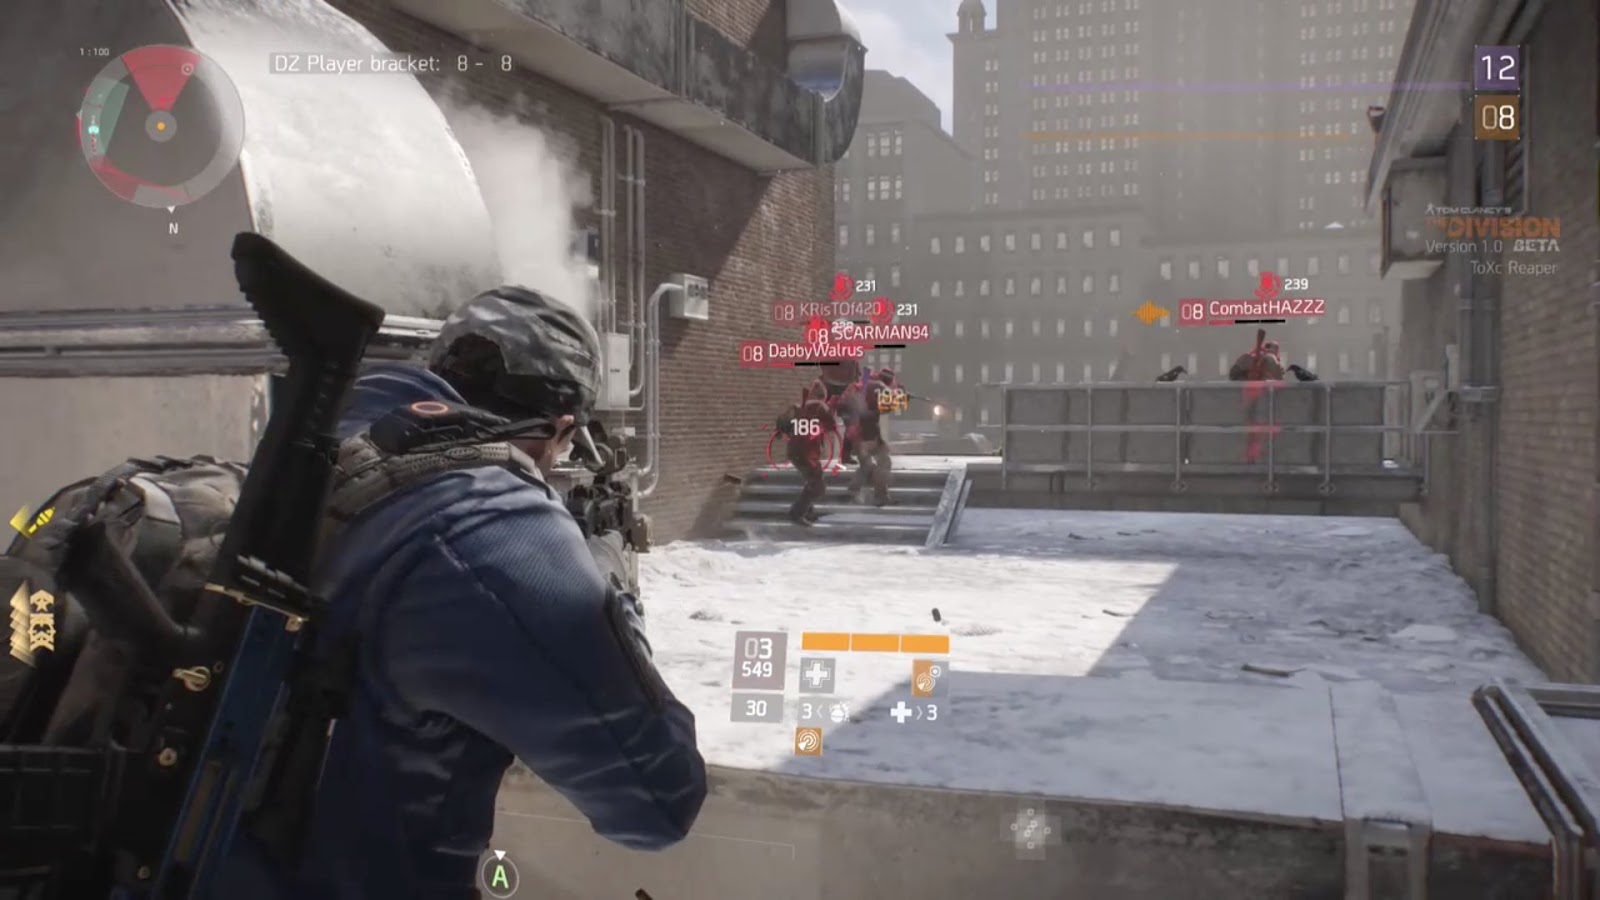 Massive announced that they are working on a year's worth of post-release content for The Division, including free content.